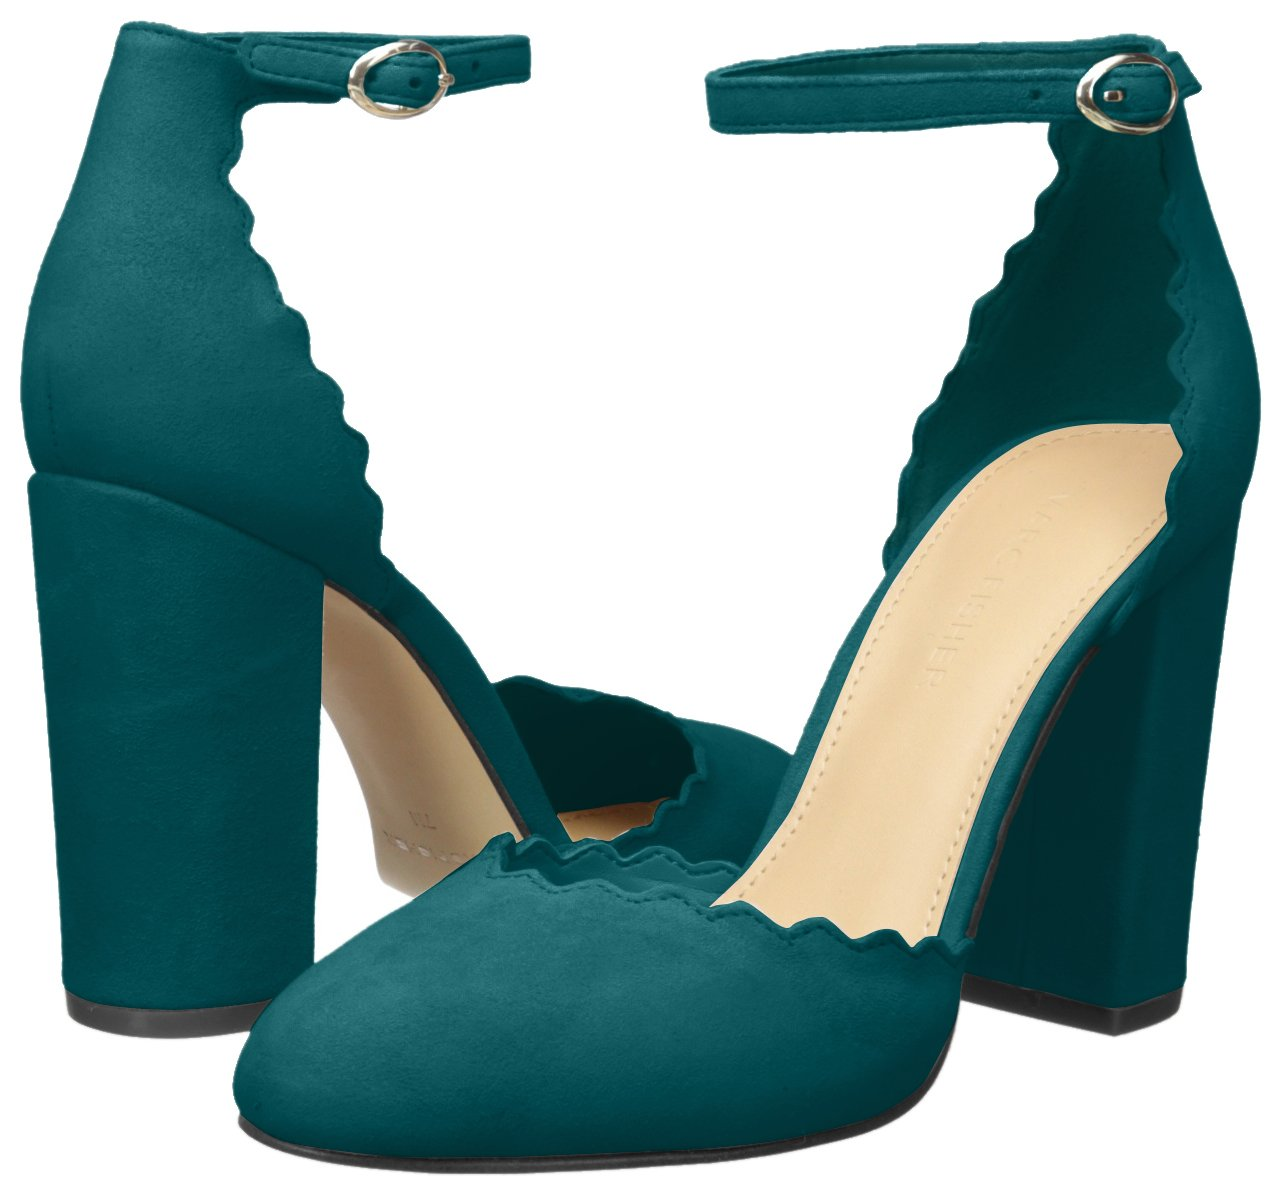 Marc Fisher Women's Sahar Pump B074SZF2WP 9.5 B(M) US|Medium Green